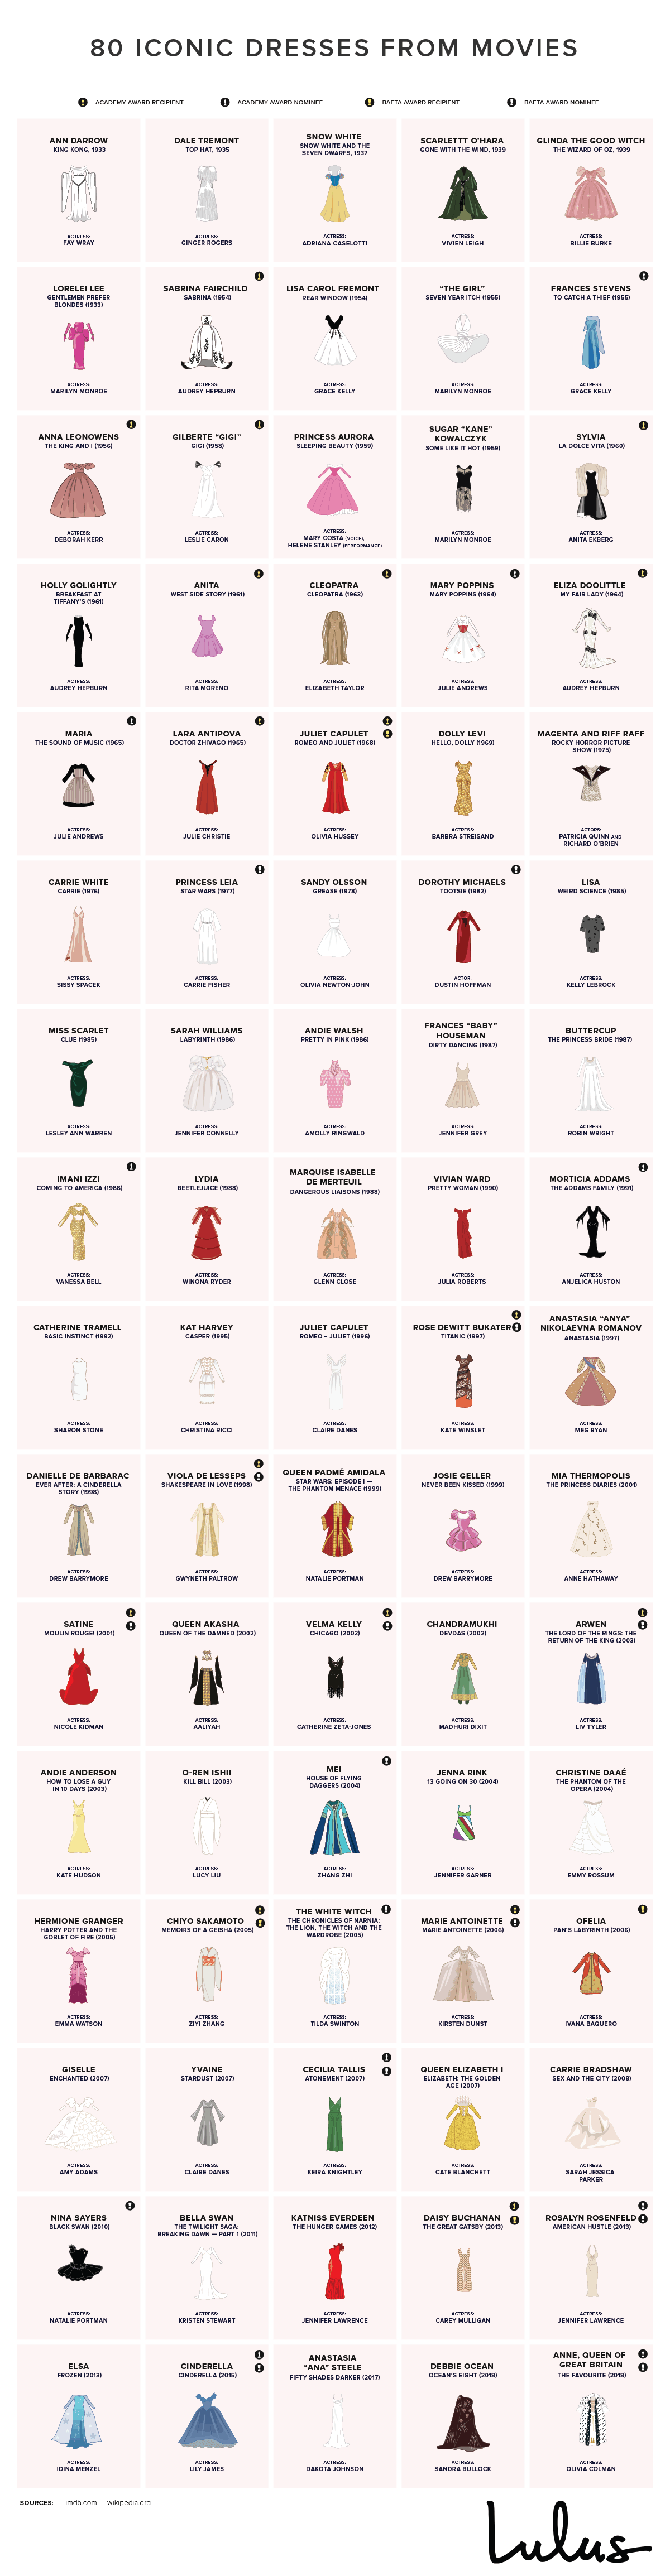 80 Iconic Dresses From Movies